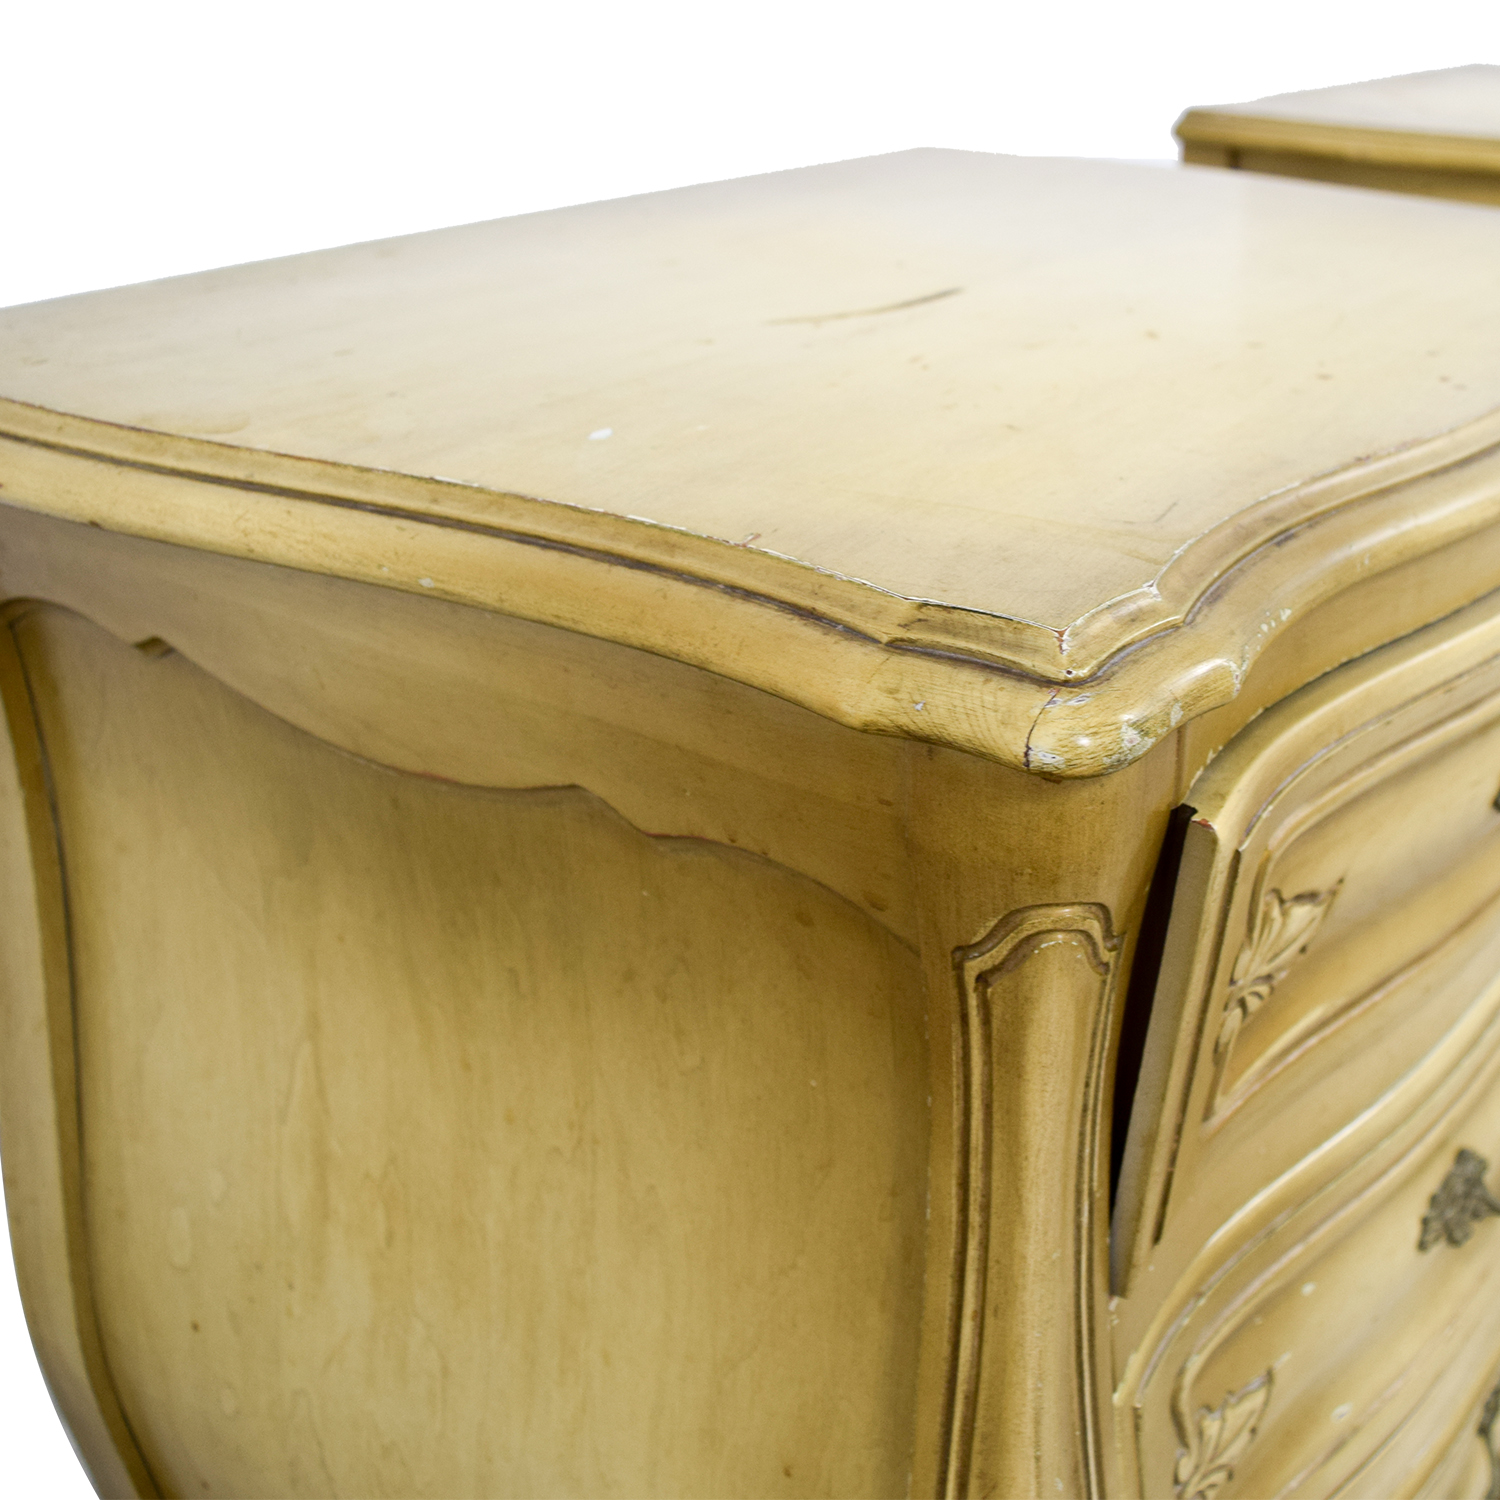 Distressed Mustard Night Stands for sale